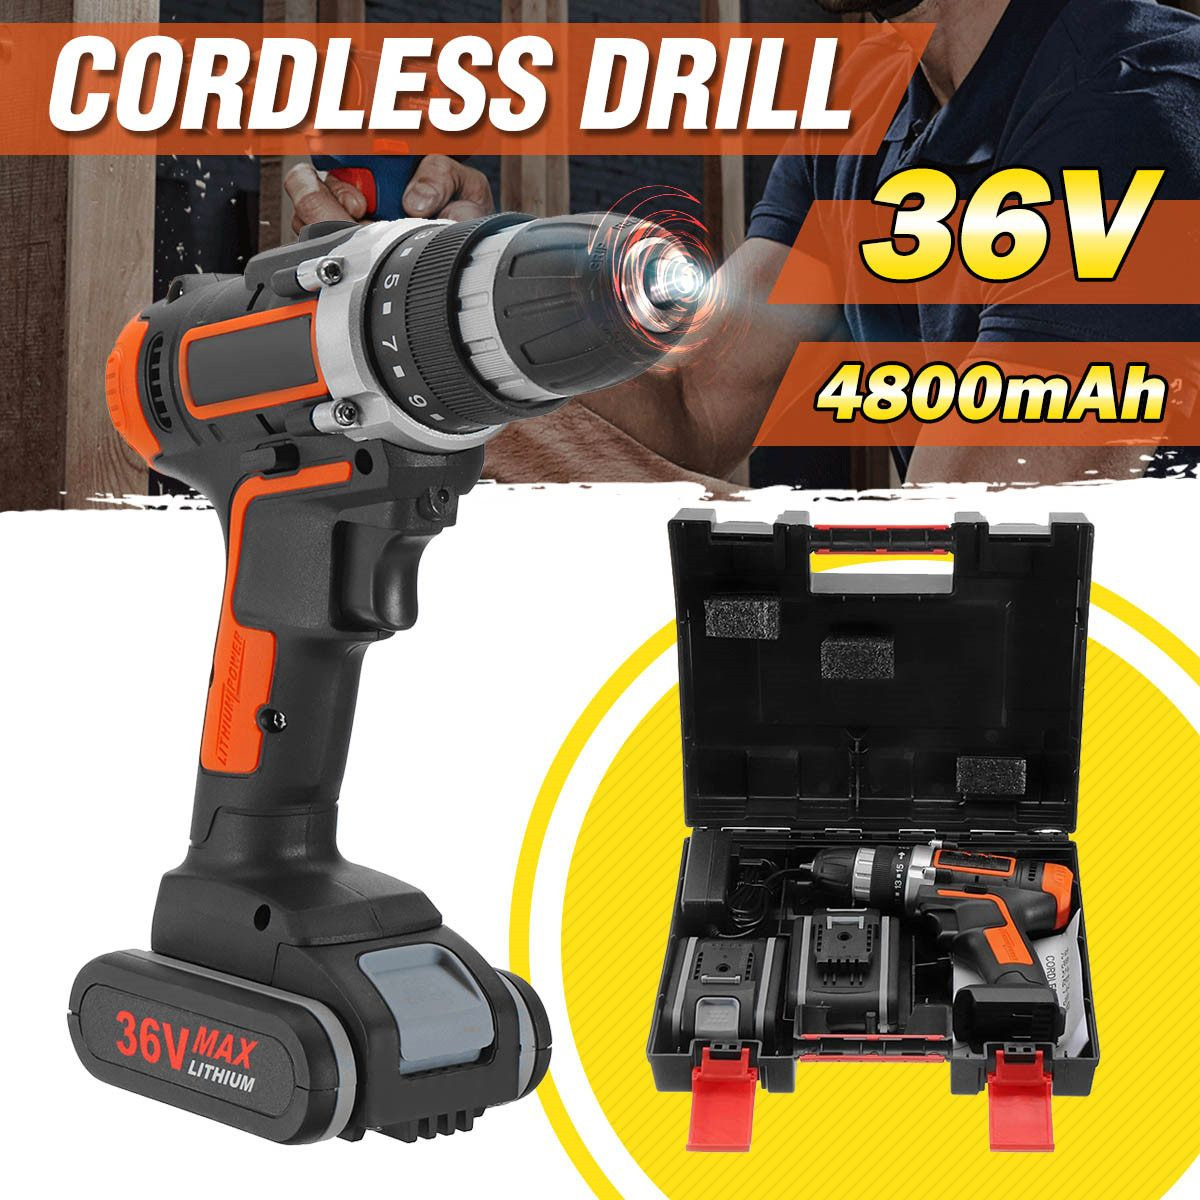 36V Cordless Electric Screwdriver Cordless Drill Power Tools Handheld Drill Lithium Battery Charging Drill 1/2 Battery